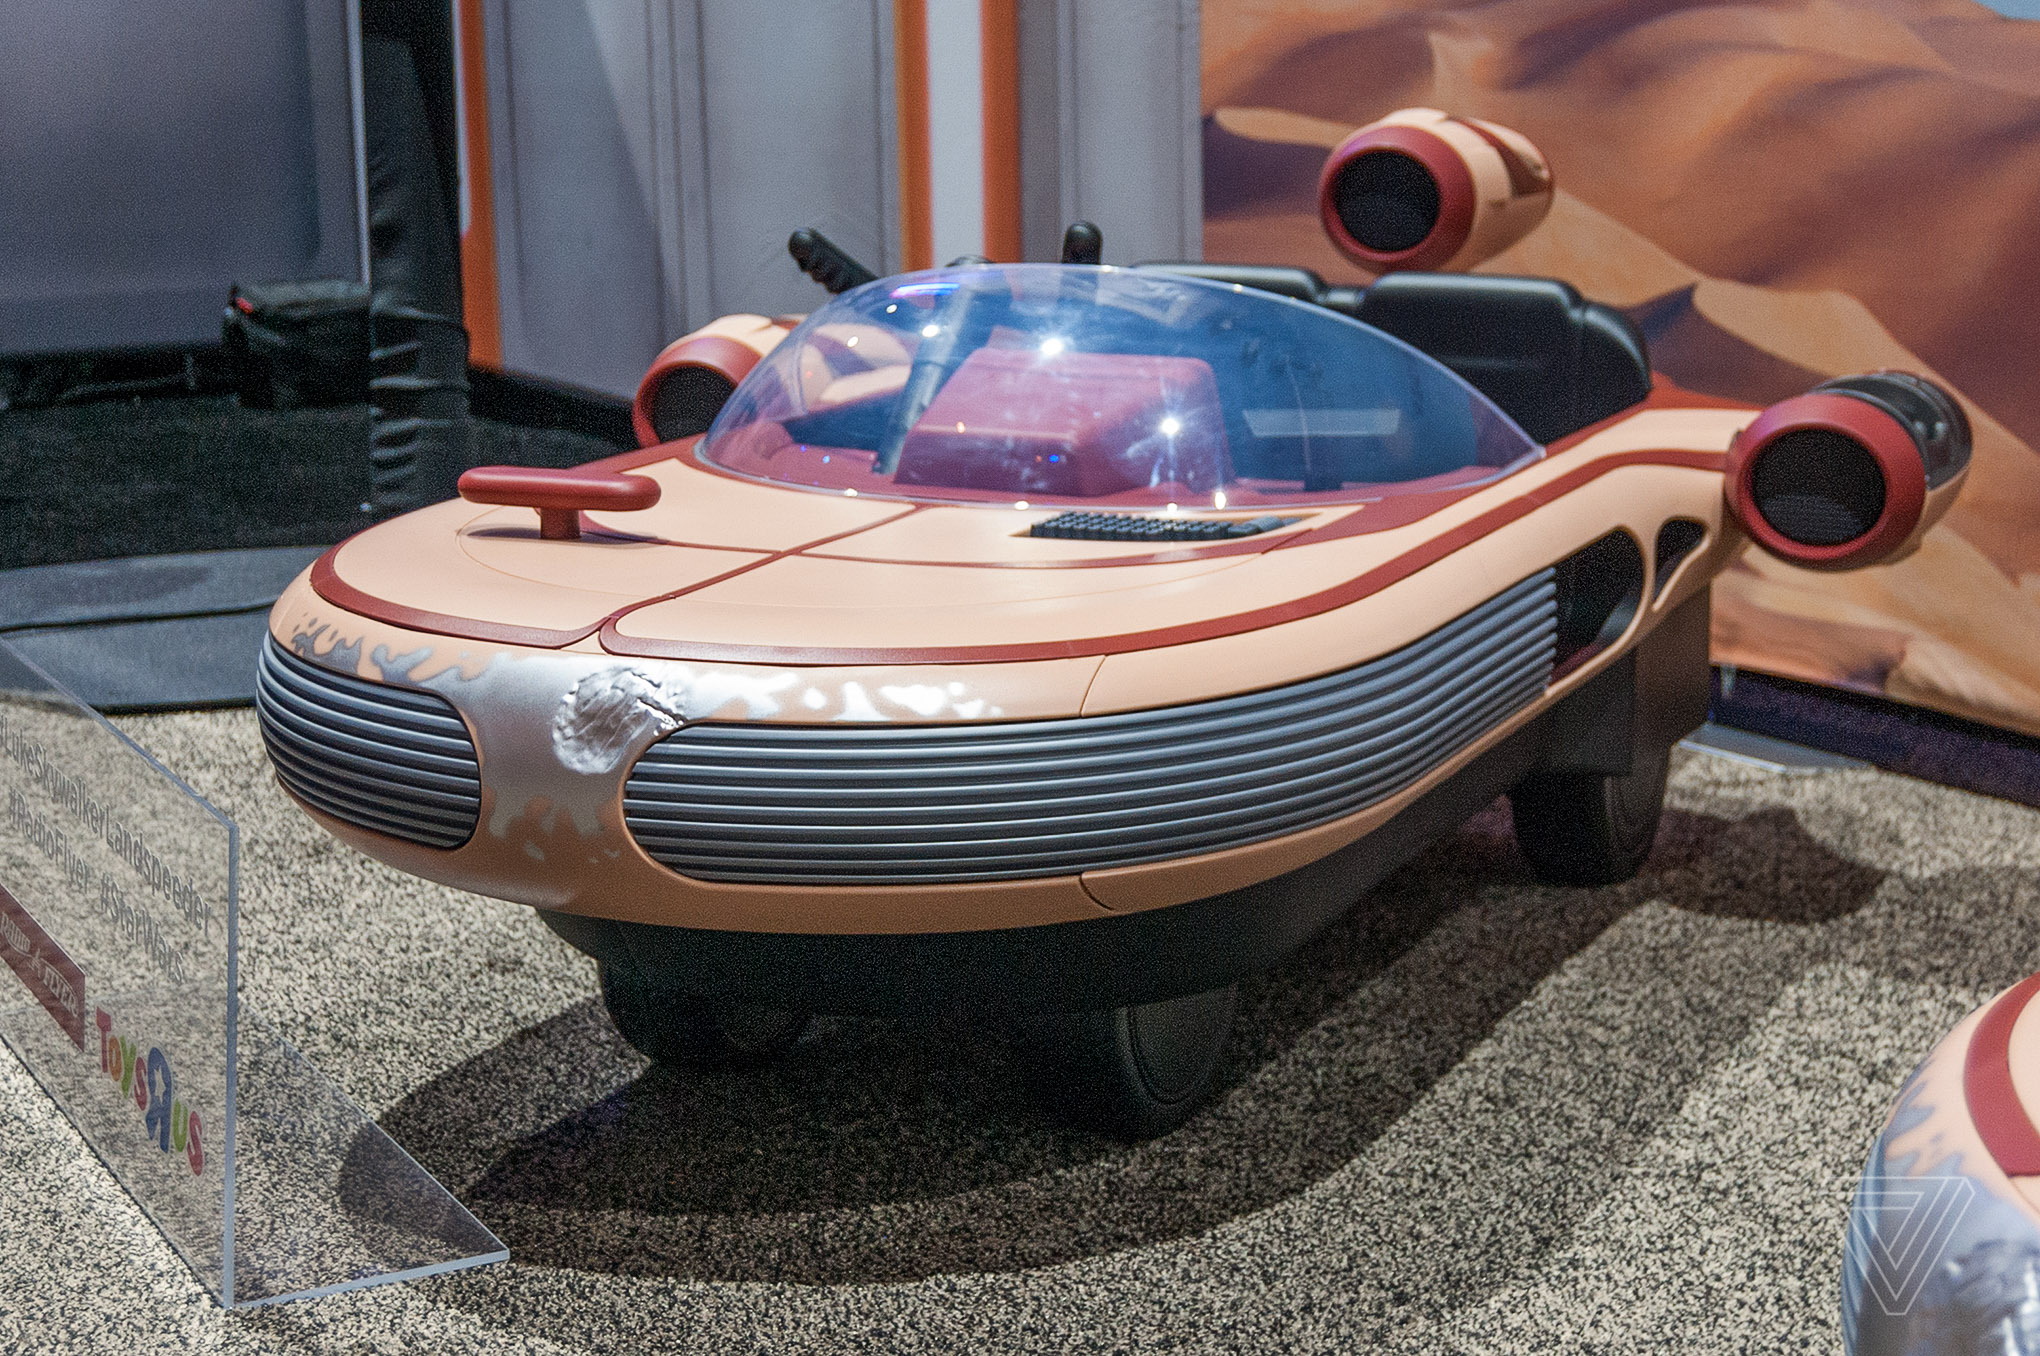 Luke Skywalker's Landspeeder brought to life by Radio Flyer